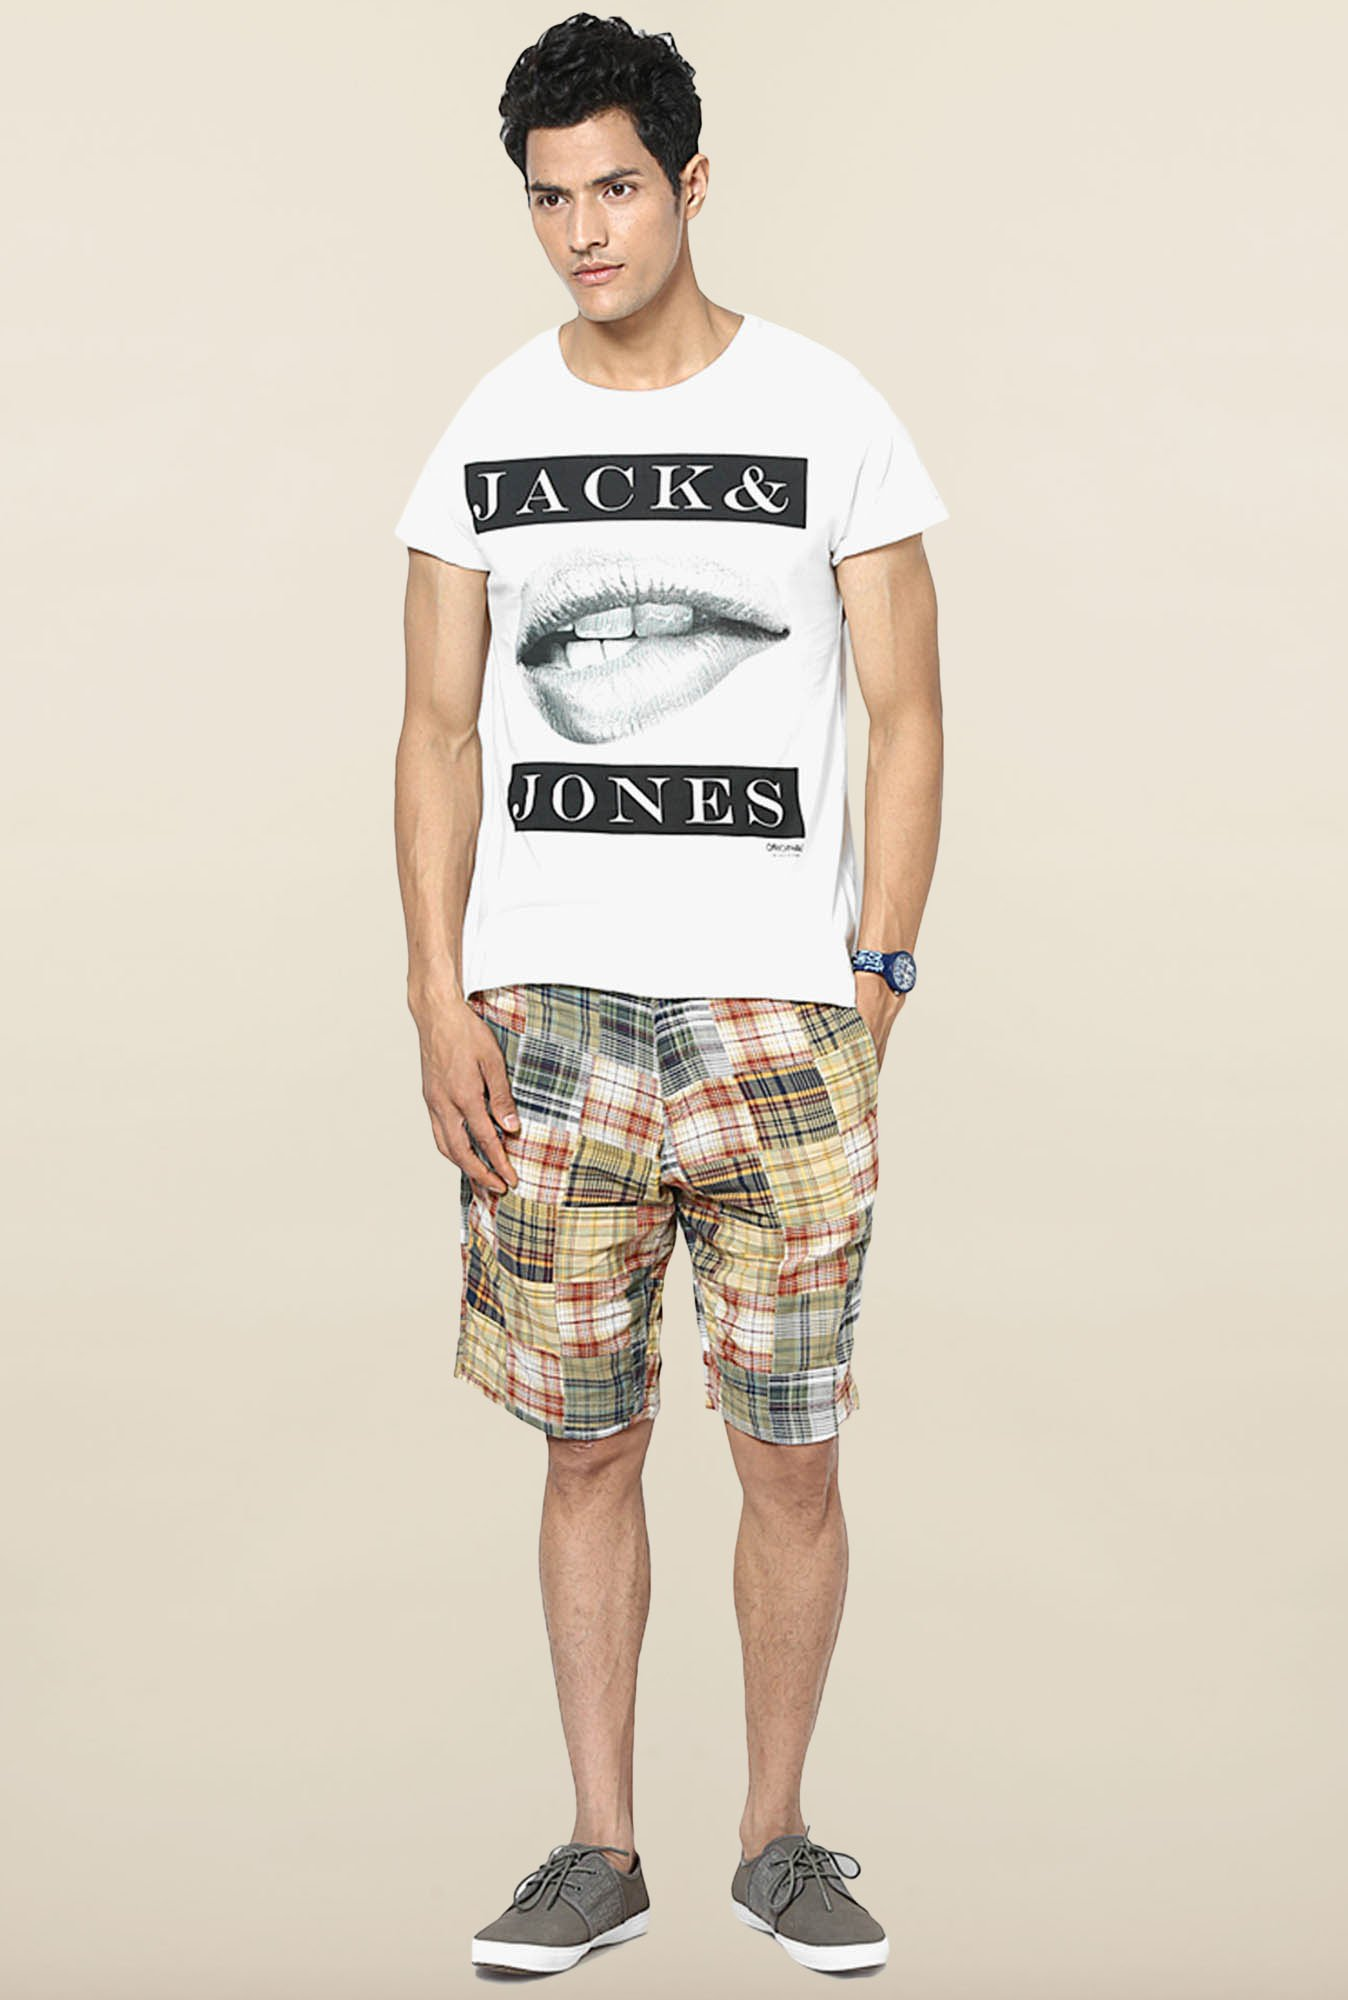 Jack & Jones White Round Neck Printed T-Shirt